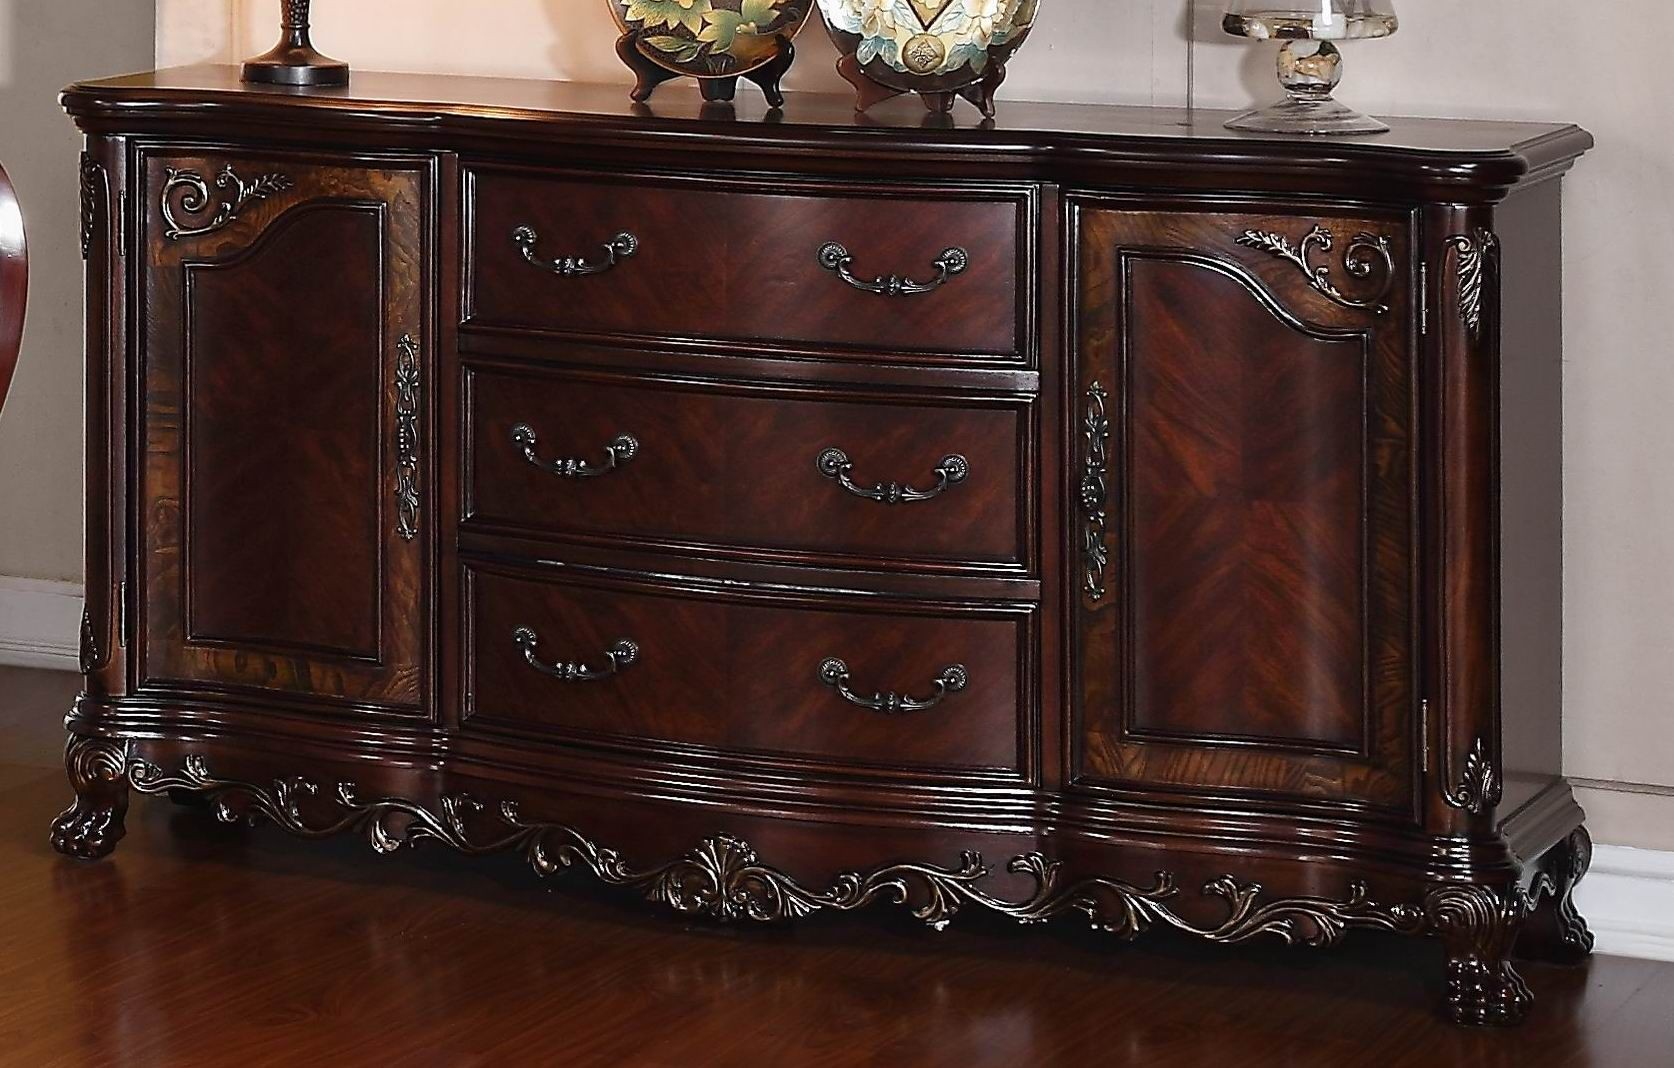 Deryn Park Cherry BuffetServer from Homelegance 2243 55  : 2243 55 from colemanfurniture.com size 1674 x 1068 jpeg 332kB